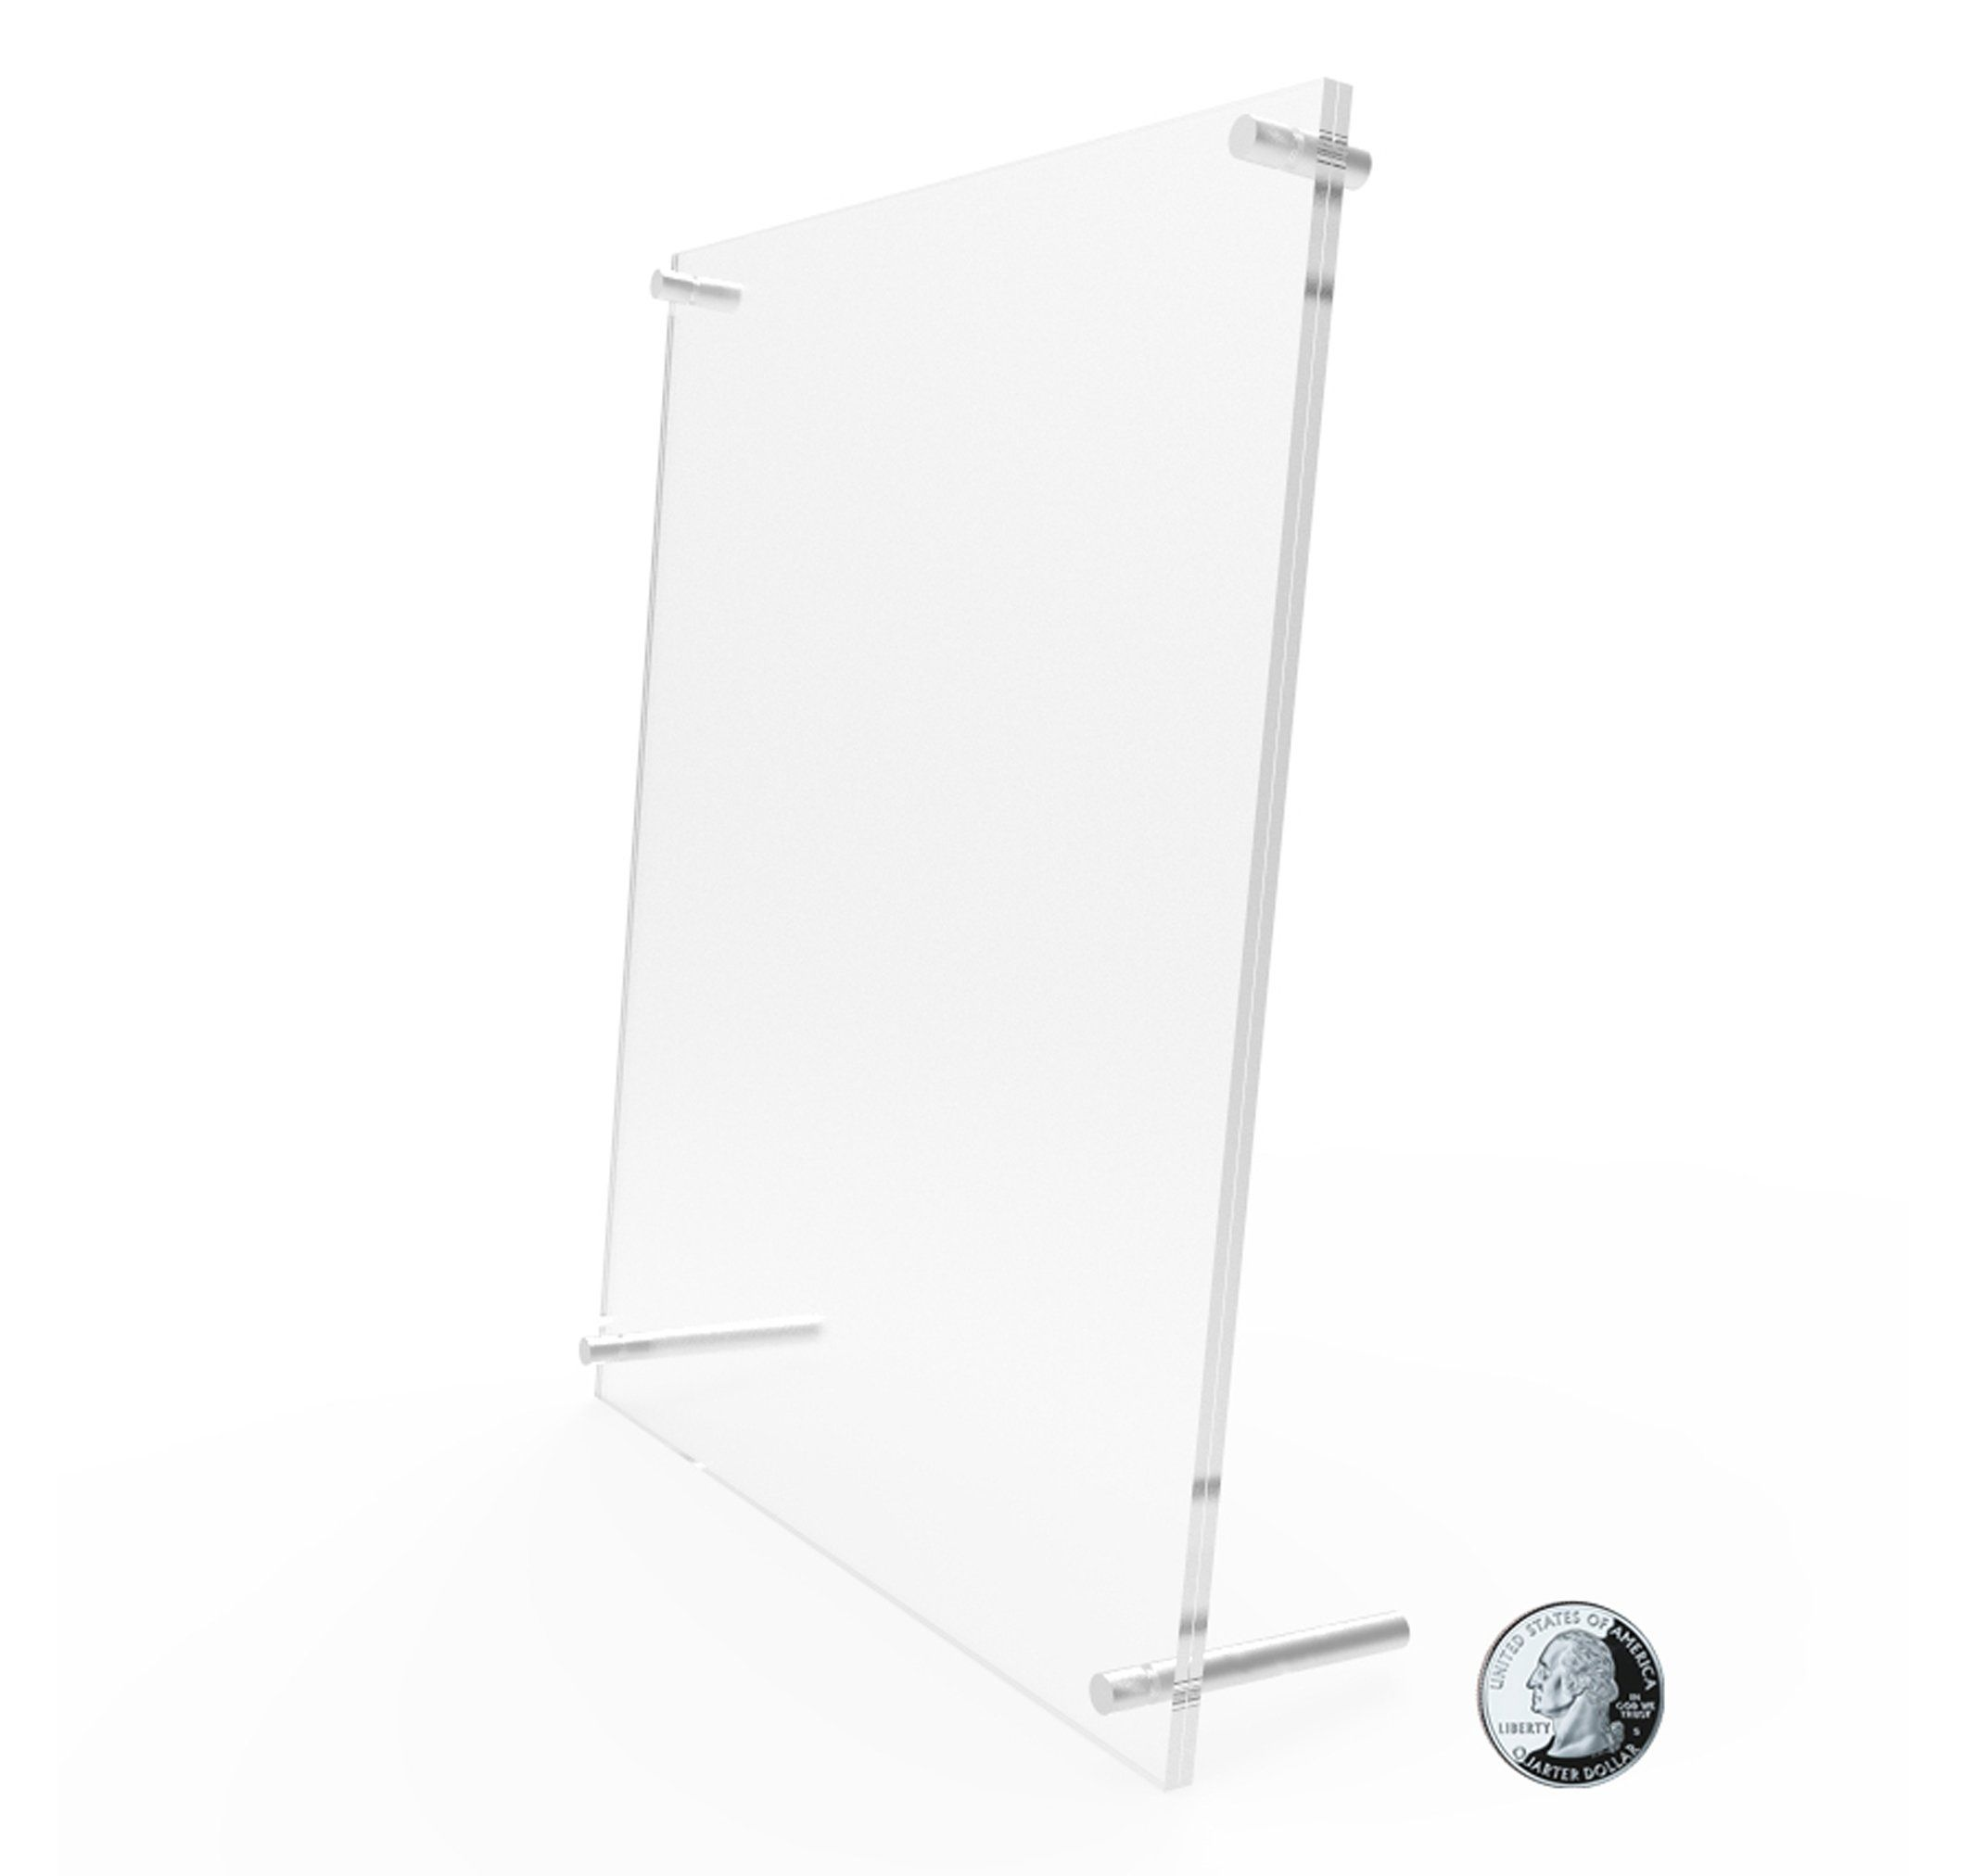 Acrylic Sign Holder Standoff Hardware Picture Frame Countertop